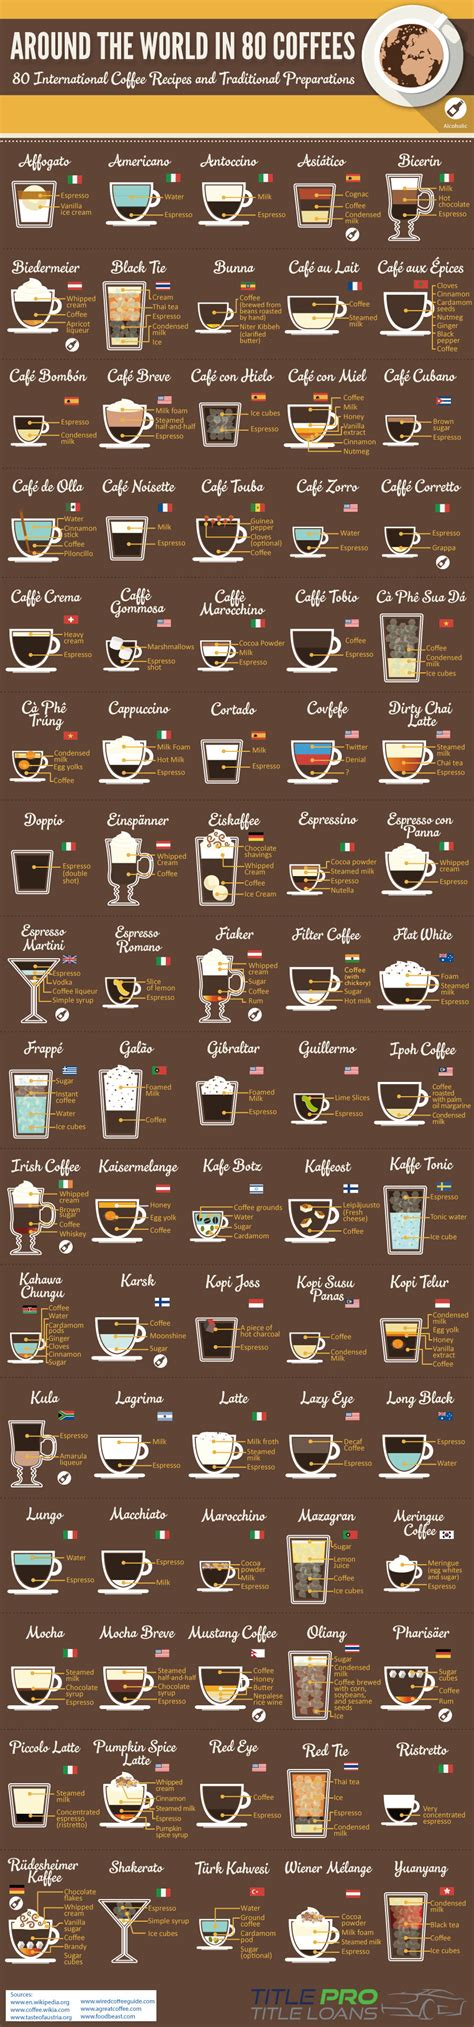 Coffees From Around The World by Around The World In 80 Coffees Recipe Infographic